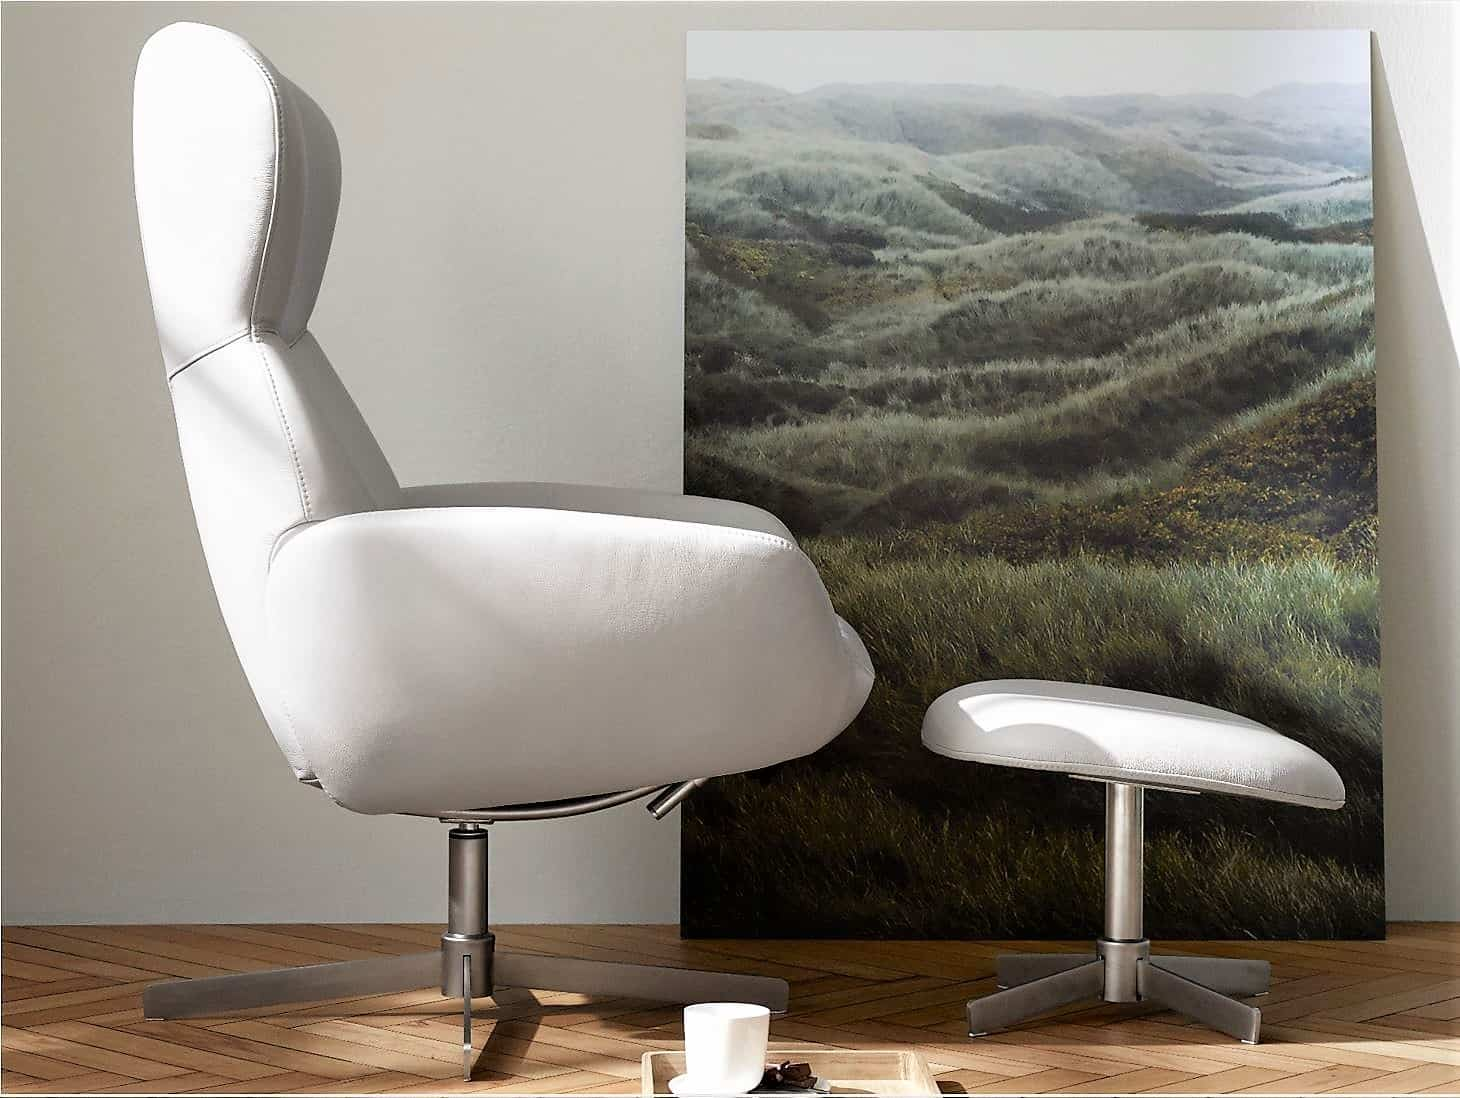 Sessel Altmodisch Athena Sessel By Frans Schrofer Boconcept Experience